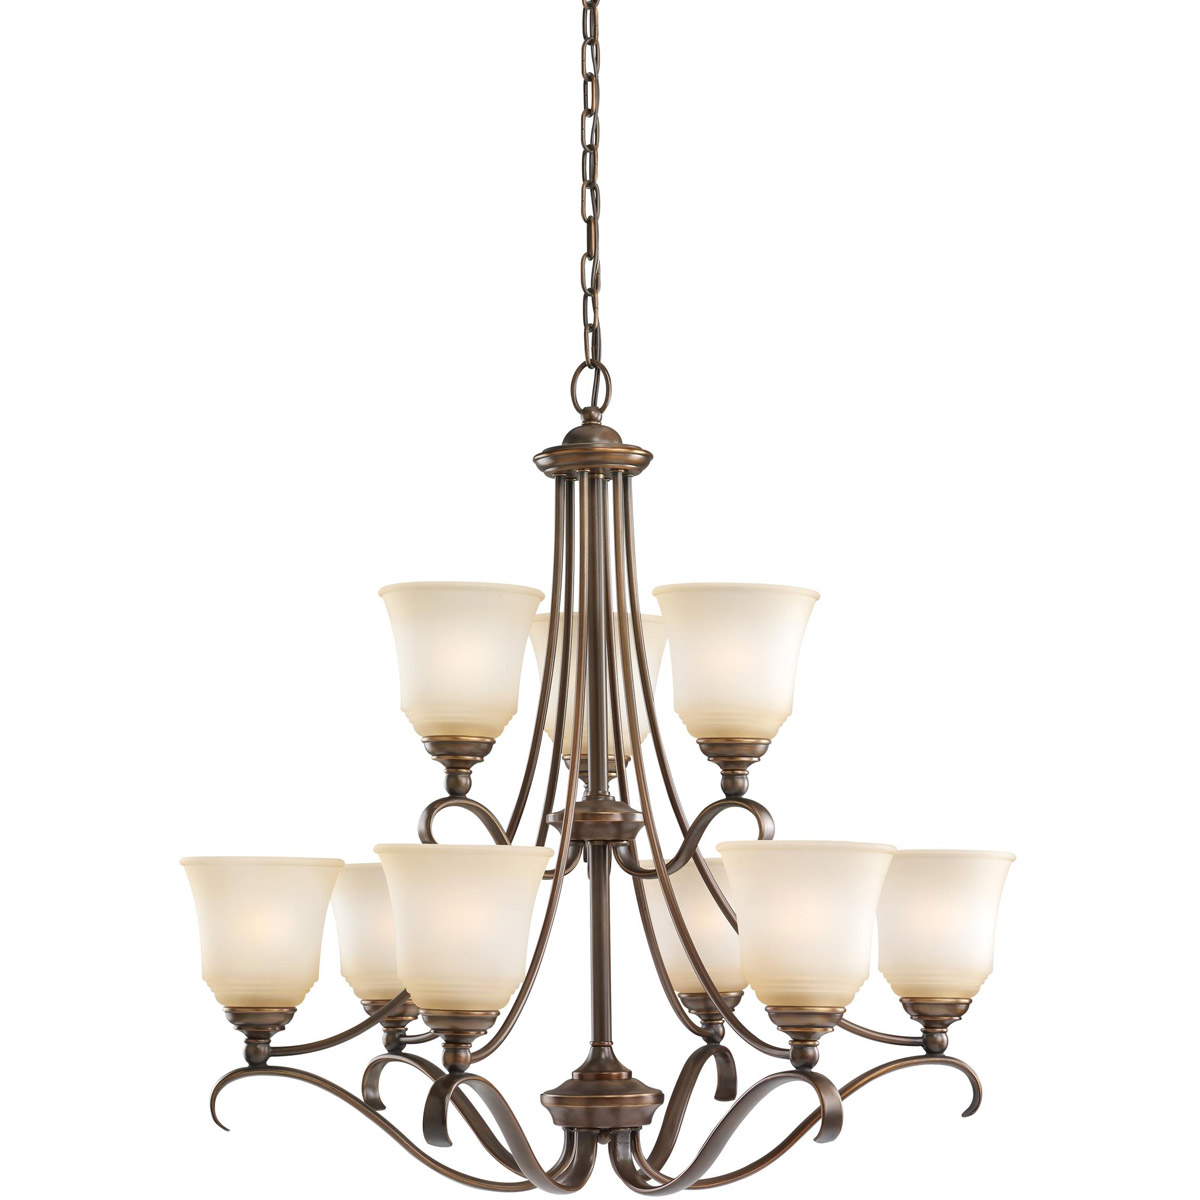 Sea Gull 31381-829 Parkview 9 Light 31 inch Russet Bronze Chandelier Ceiling Light in Ginger Glass photo